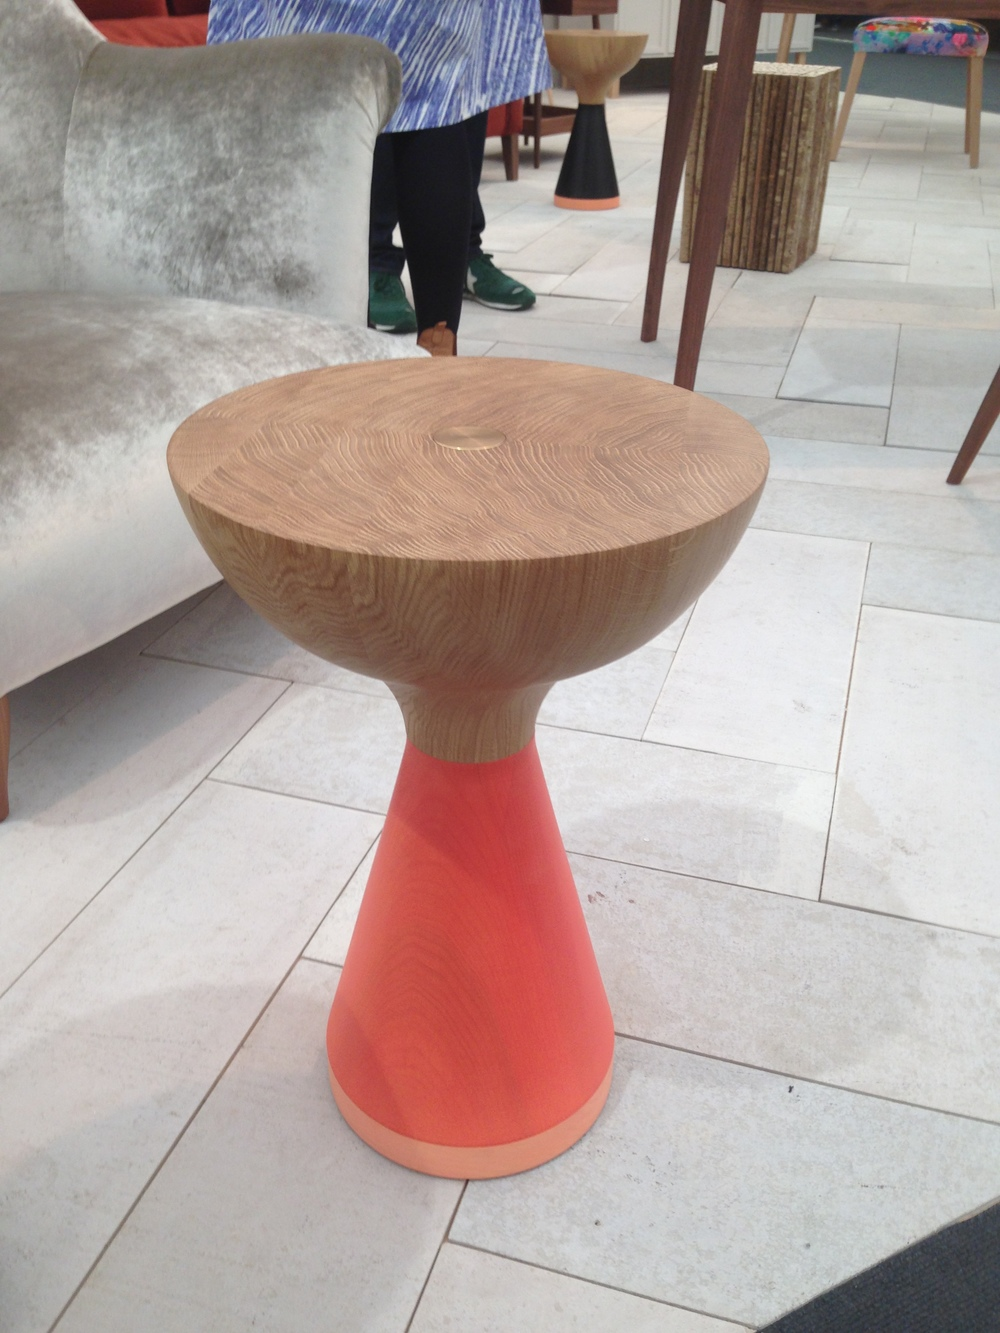 Great Russell Pinch stool from  Pinch Design  at Tent.